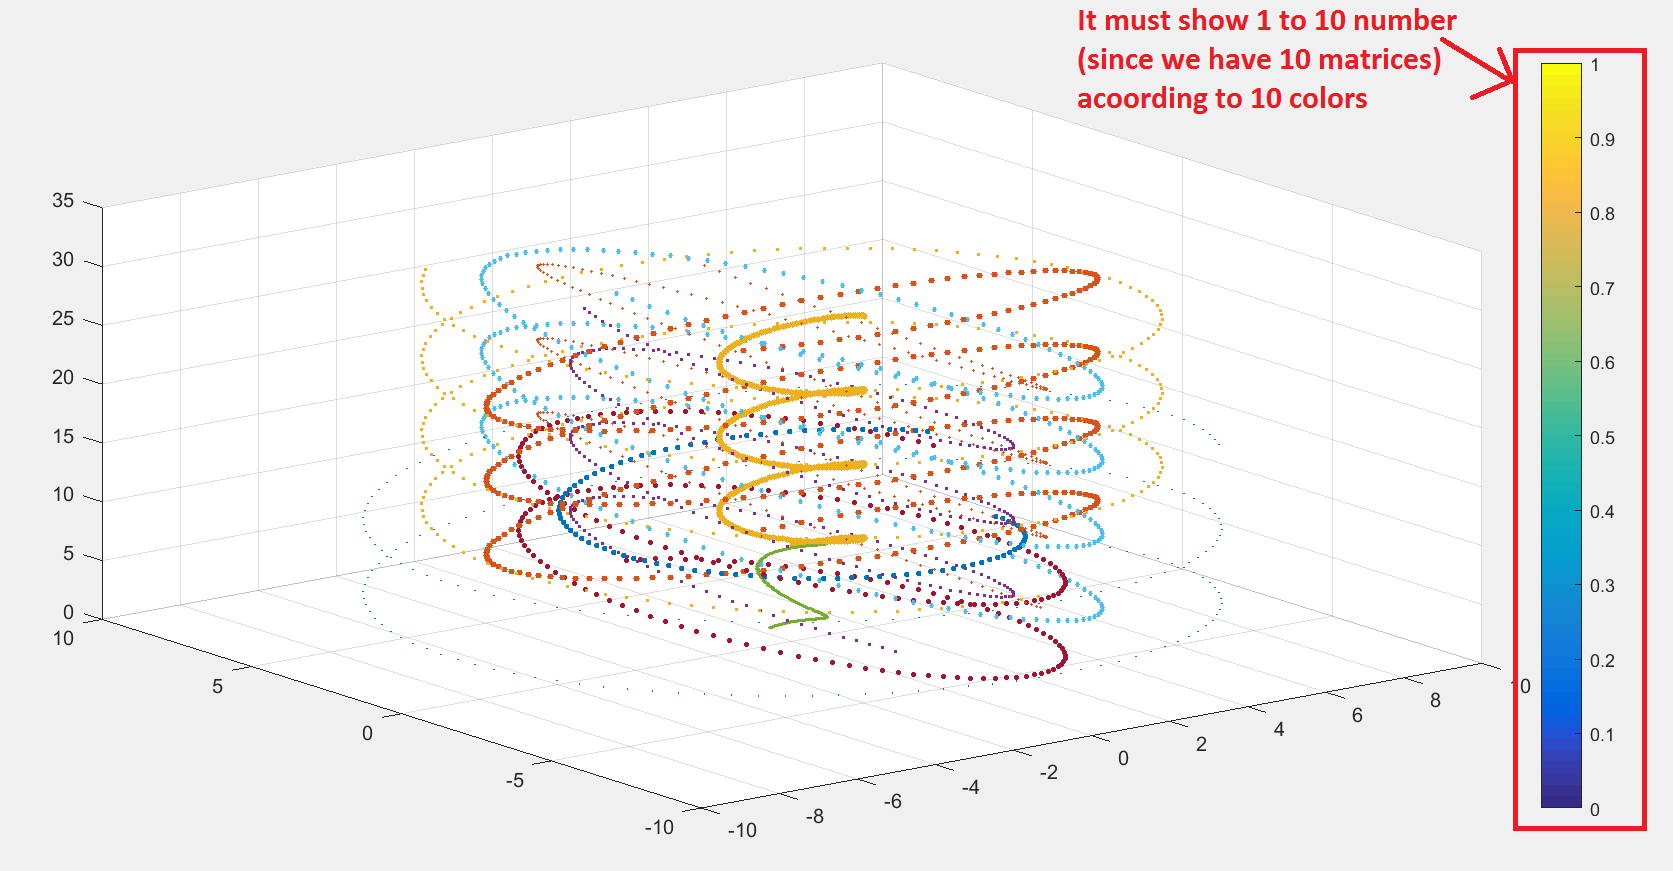 matlab - How to use colormap in a 3D plot? - Stack Overflow